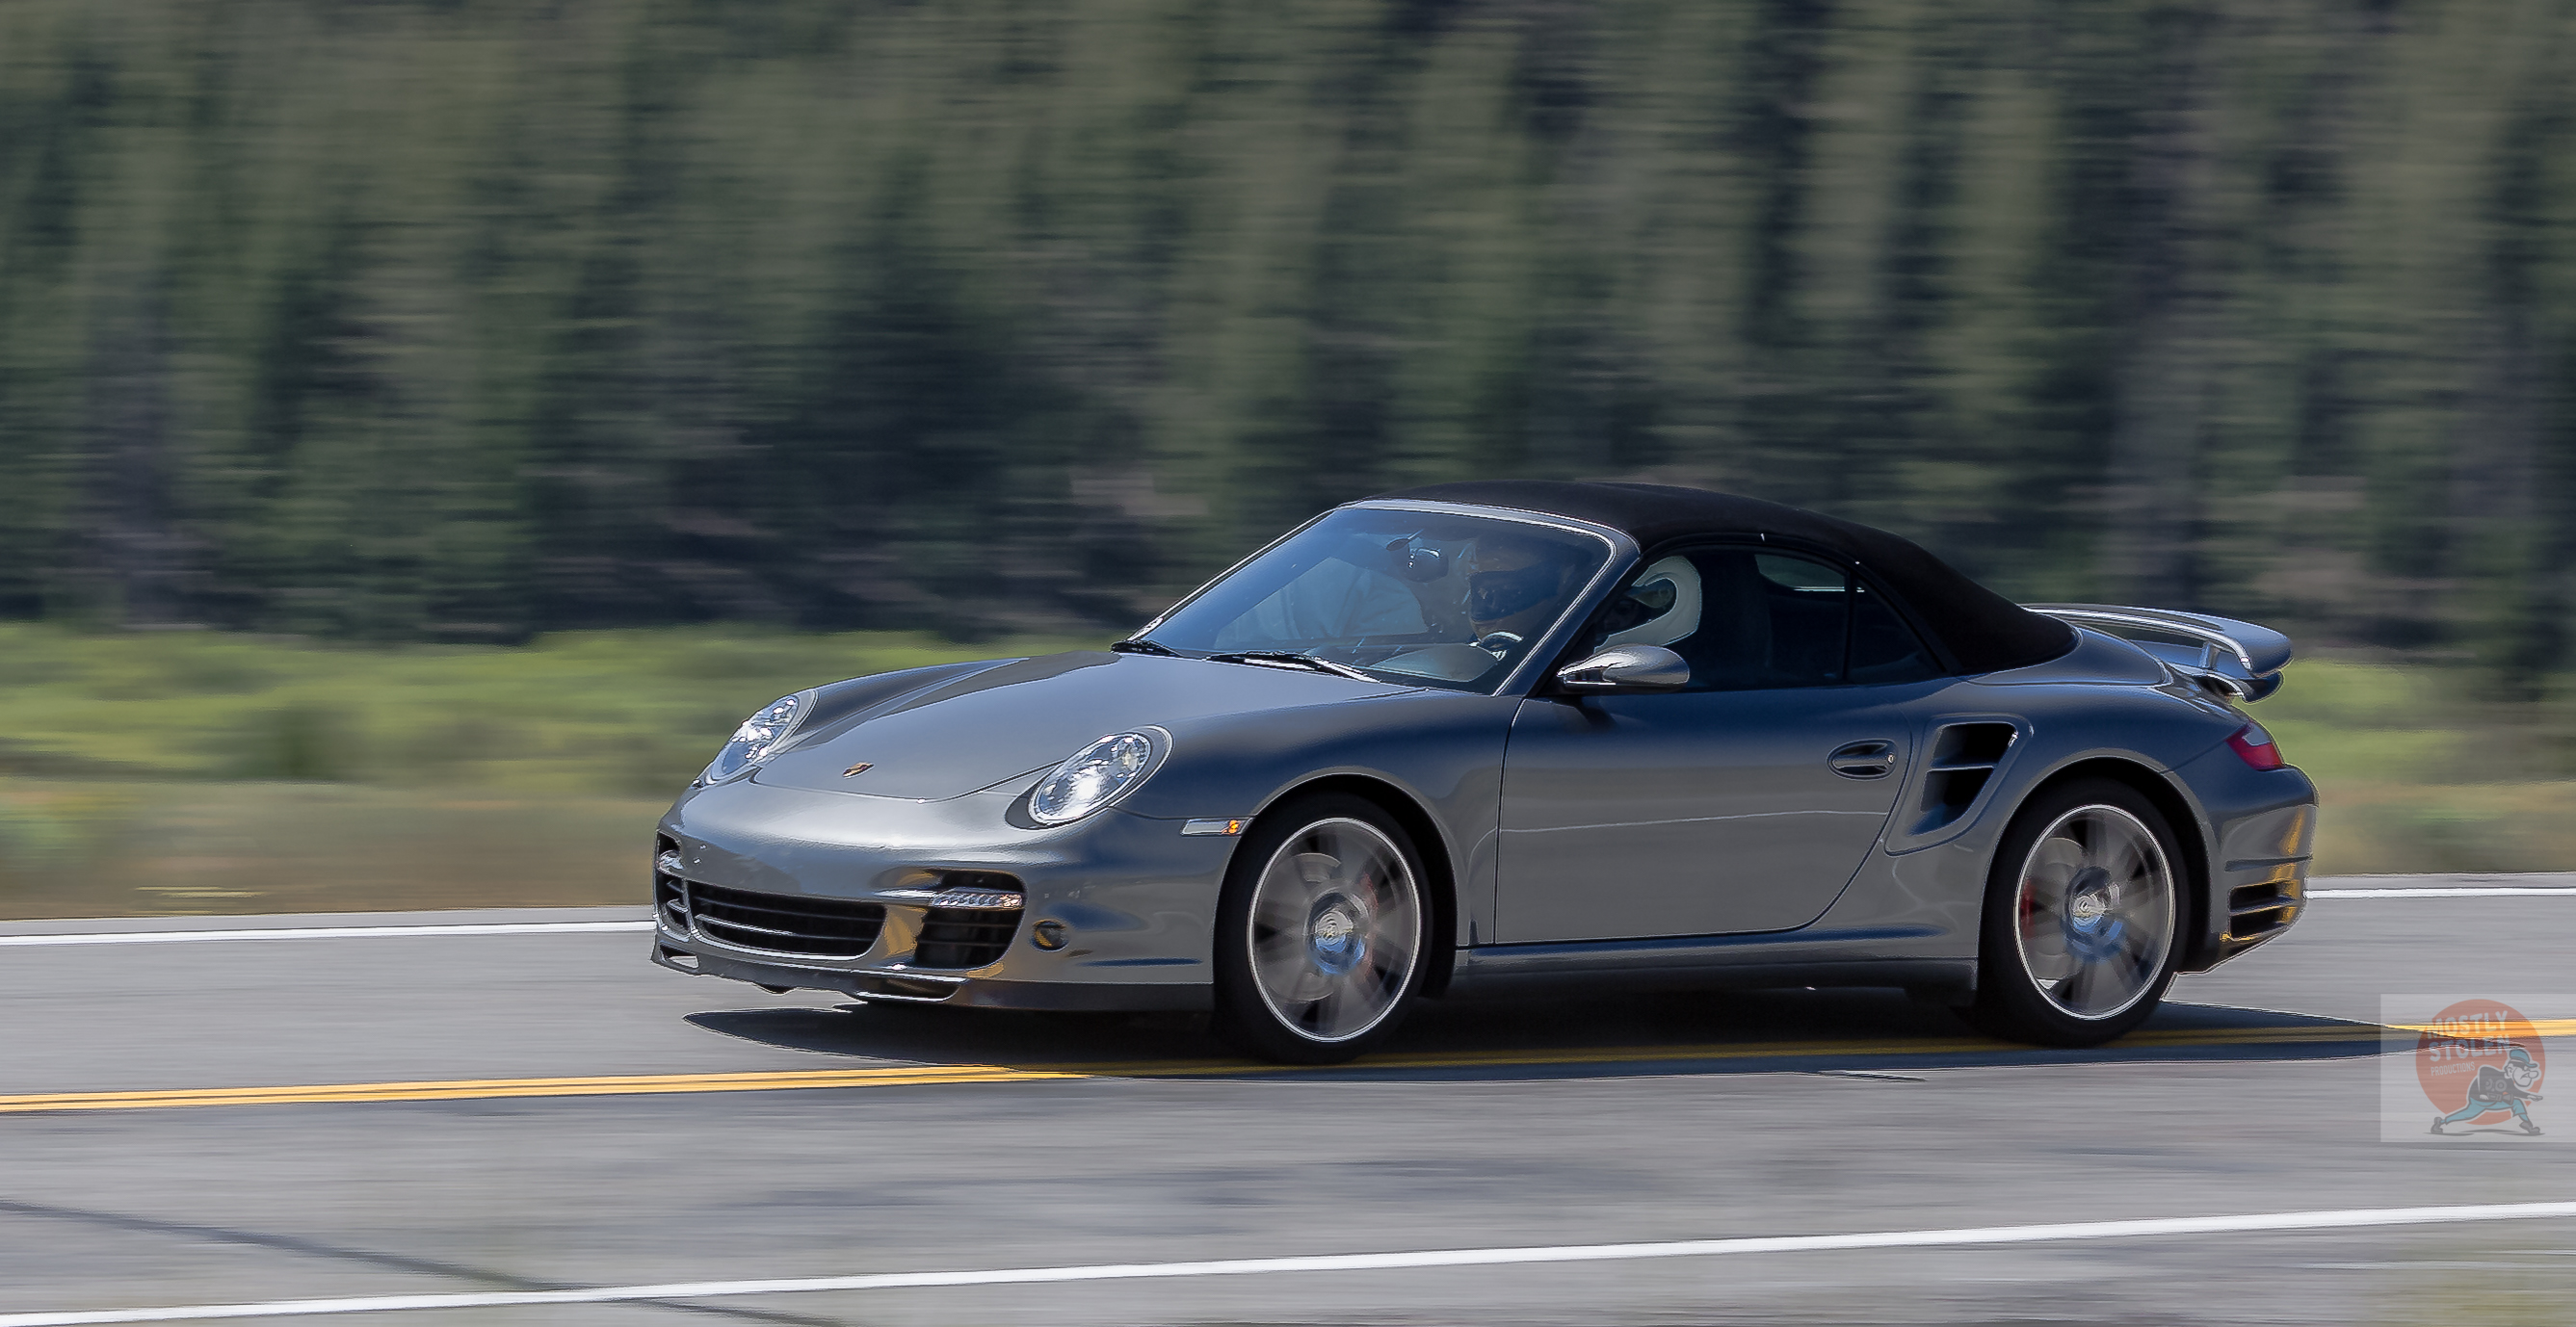 911 Turbo S Cabrio at 200 mph-1273-David Concannon